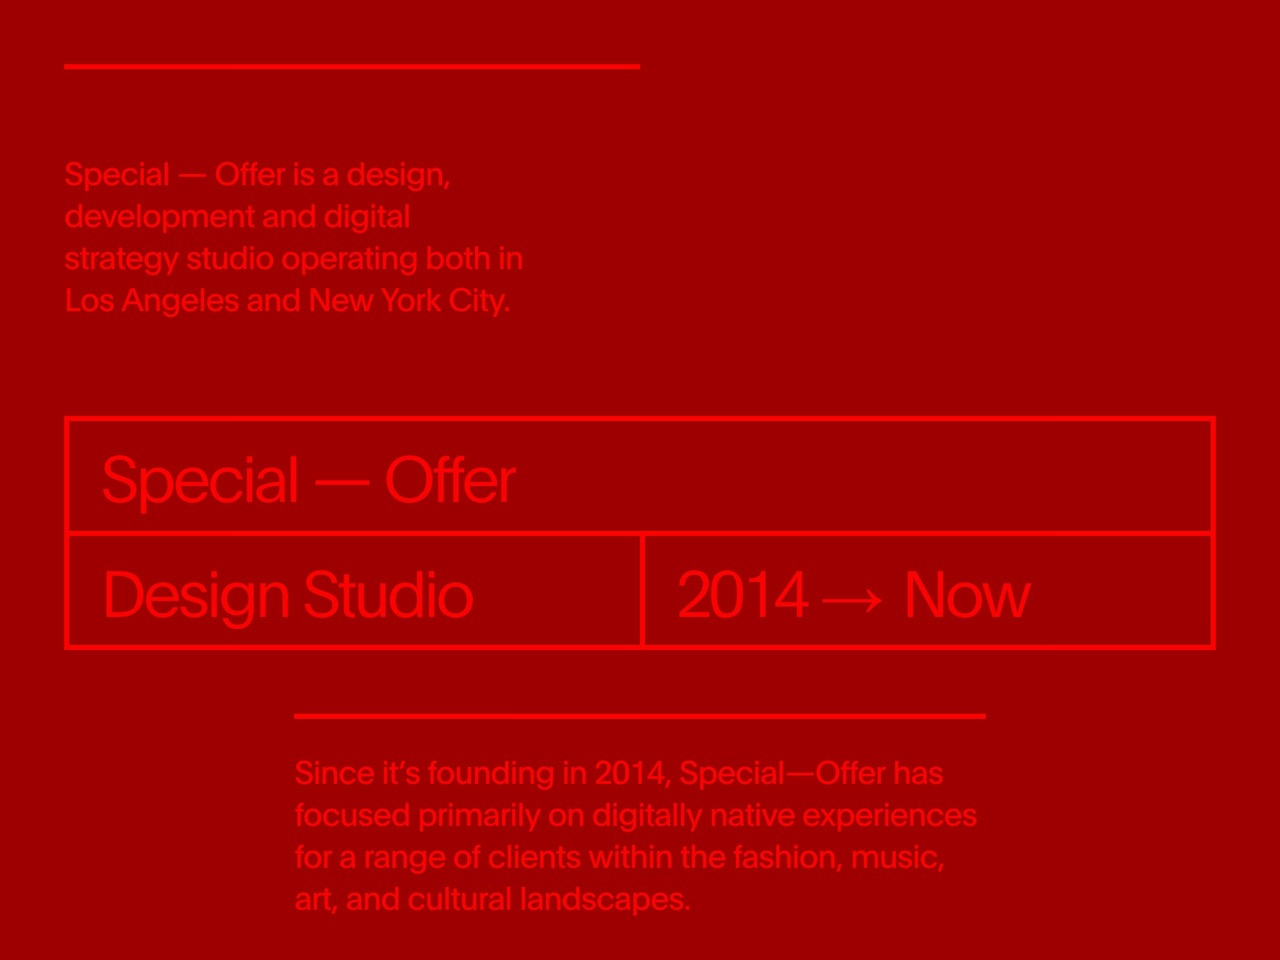 Special offer studio